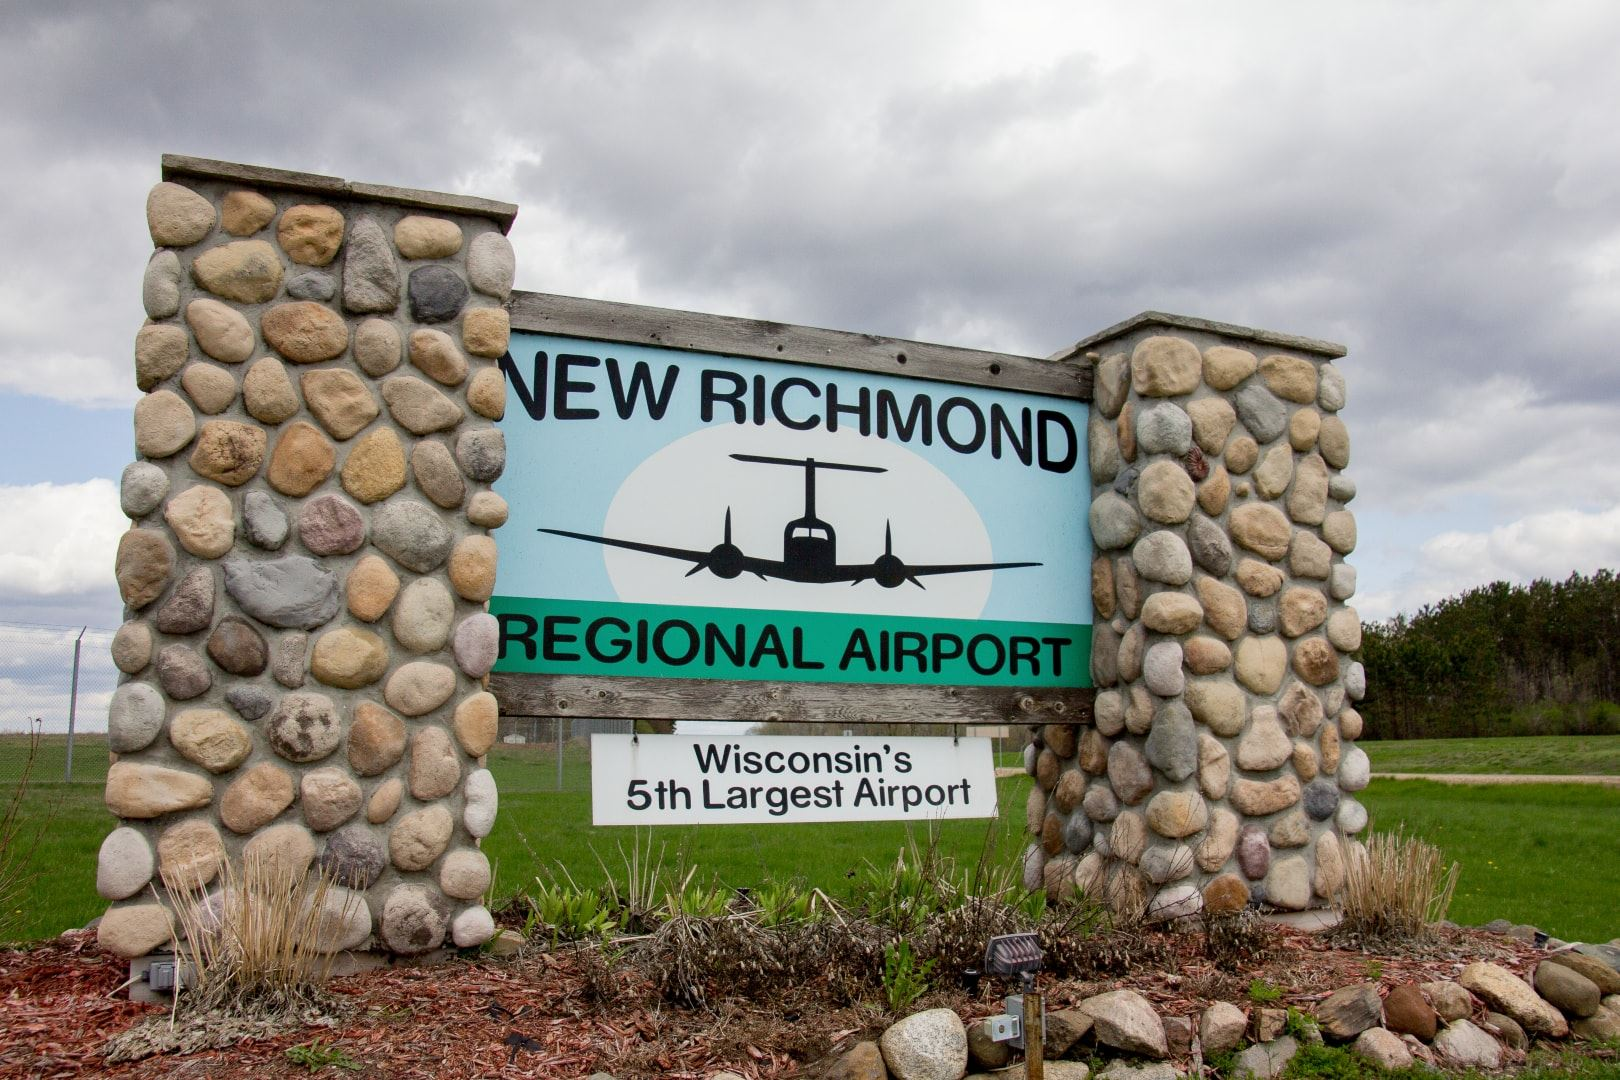 New Richmond Airport Sign